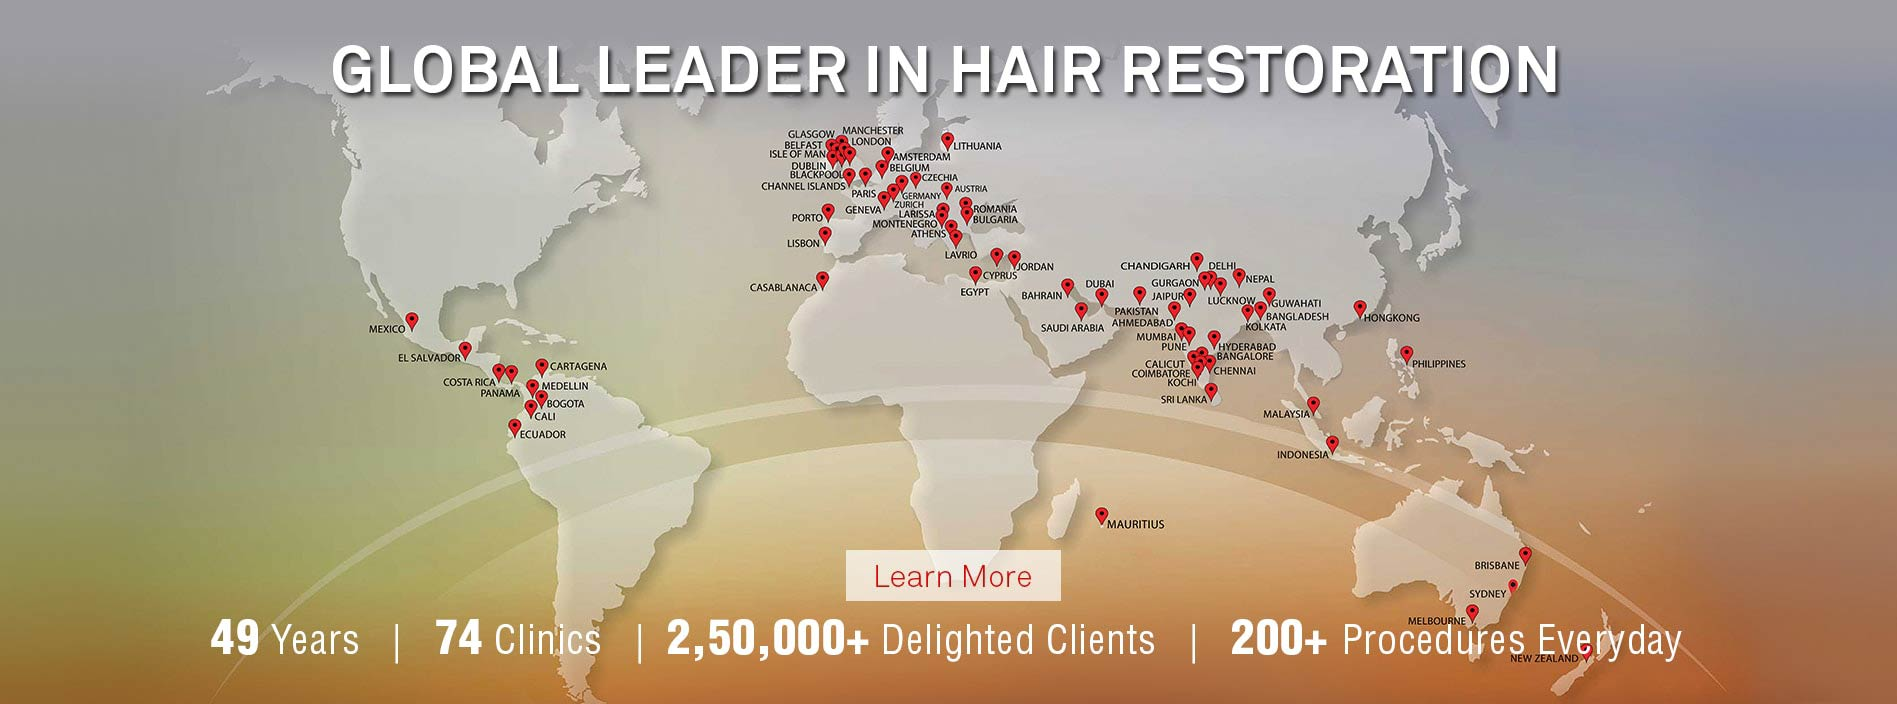 dhi hair transplant clinics map